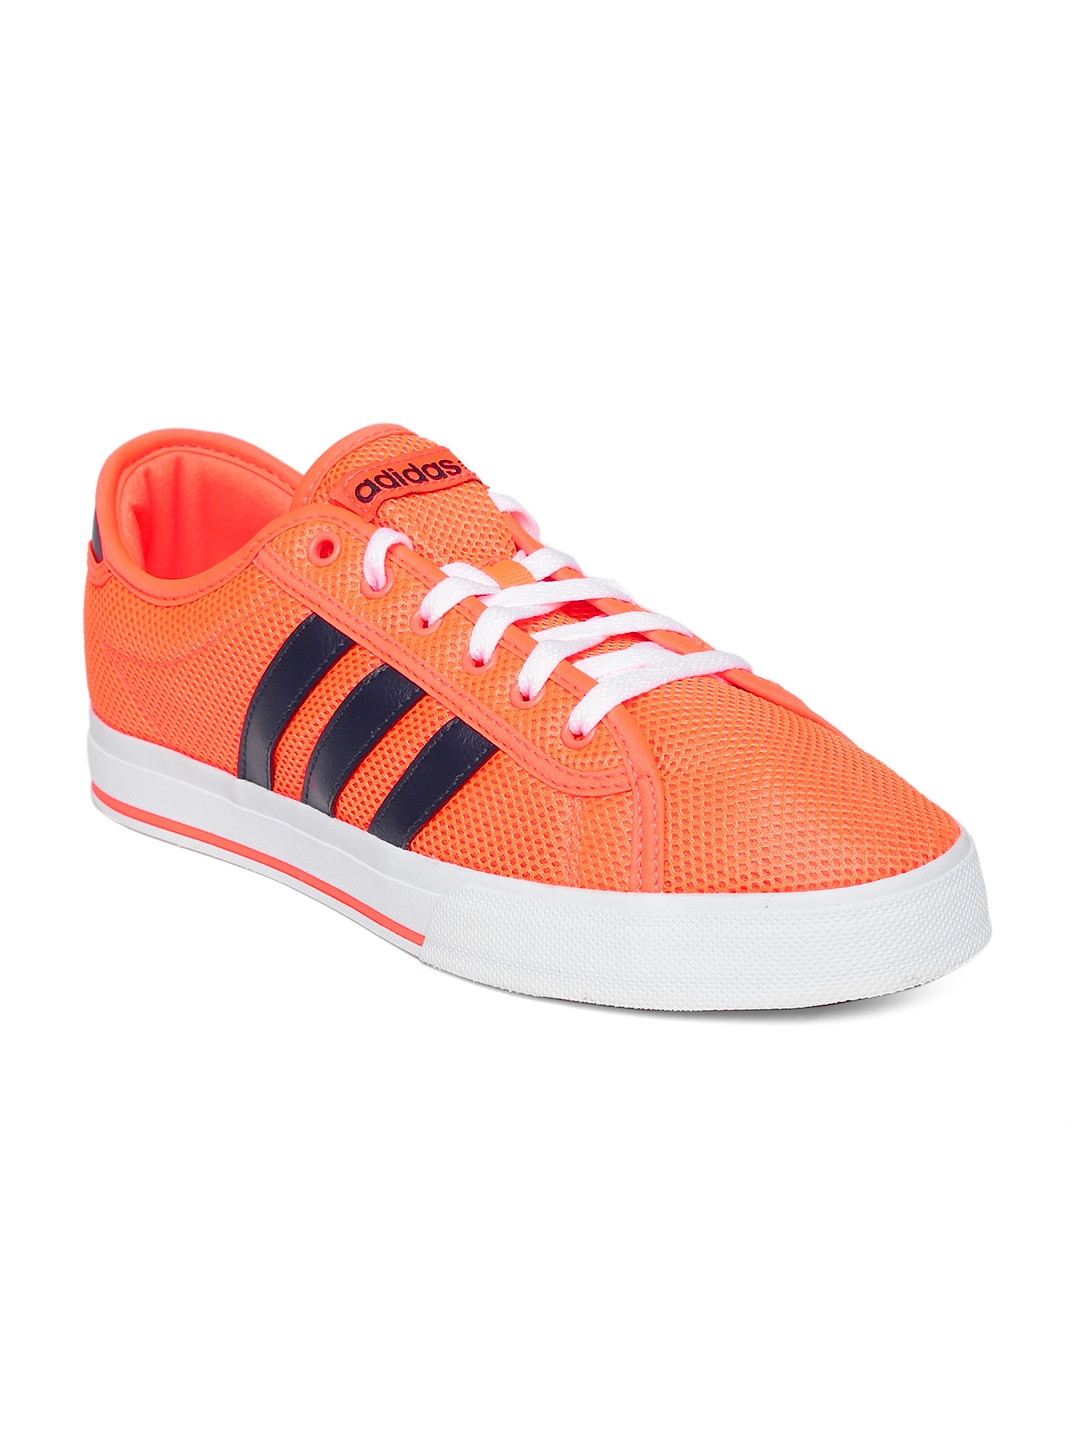 adidas neo shoes price in india selfcavies co uk